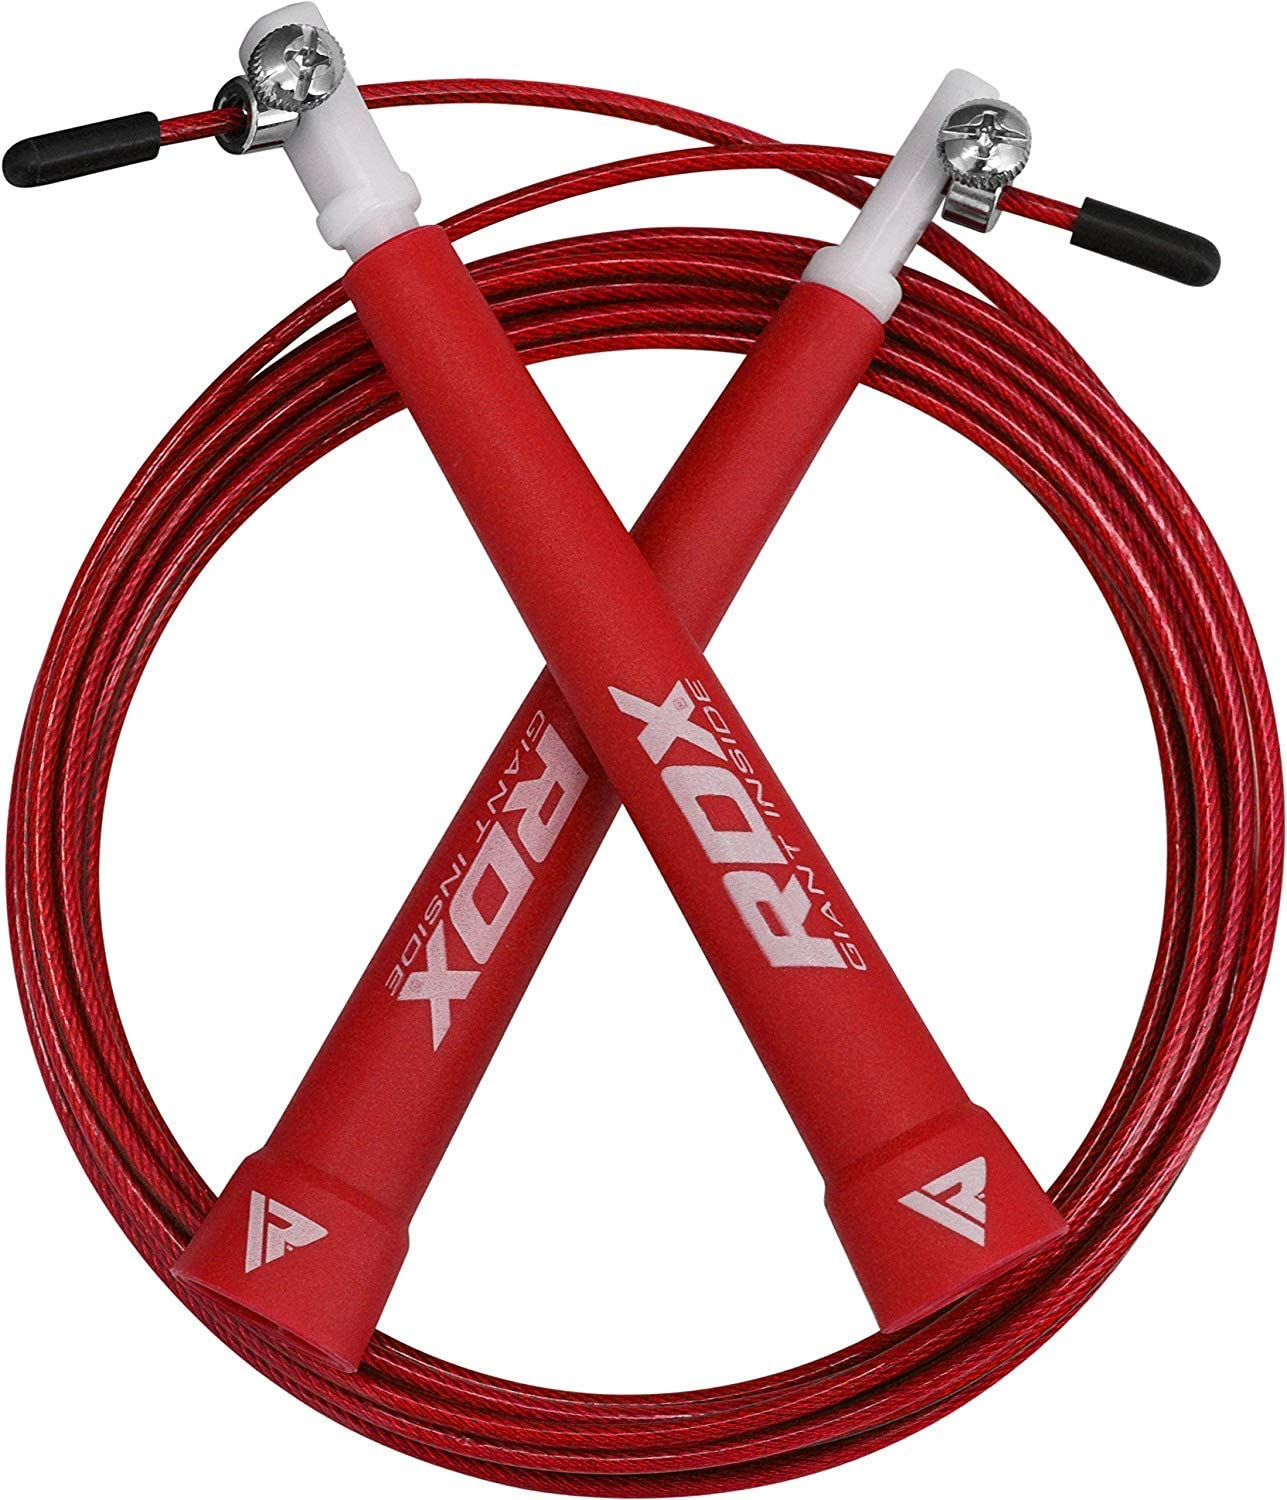 RDX Skipping Rope Speed Gymnastics Fitness Lose Weight Adjustable Gym PVC Jump Exercise MMA Boxing Jumping Cable Metal Workout Training